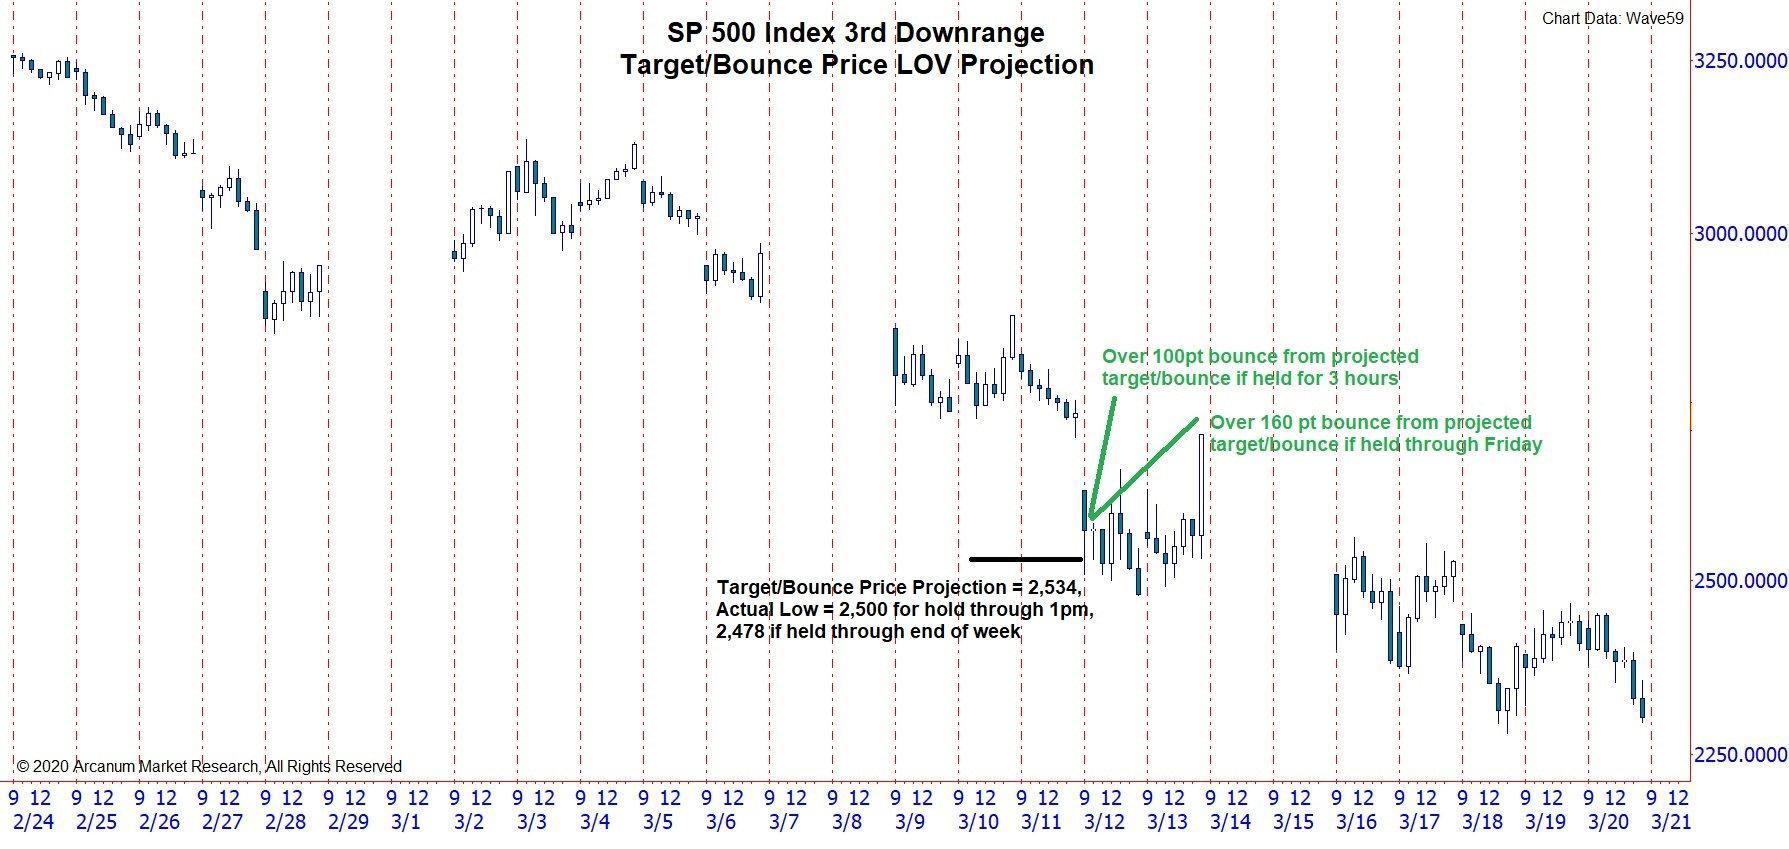 3rd SP 500 Downrange Target/Bounce Price Projection